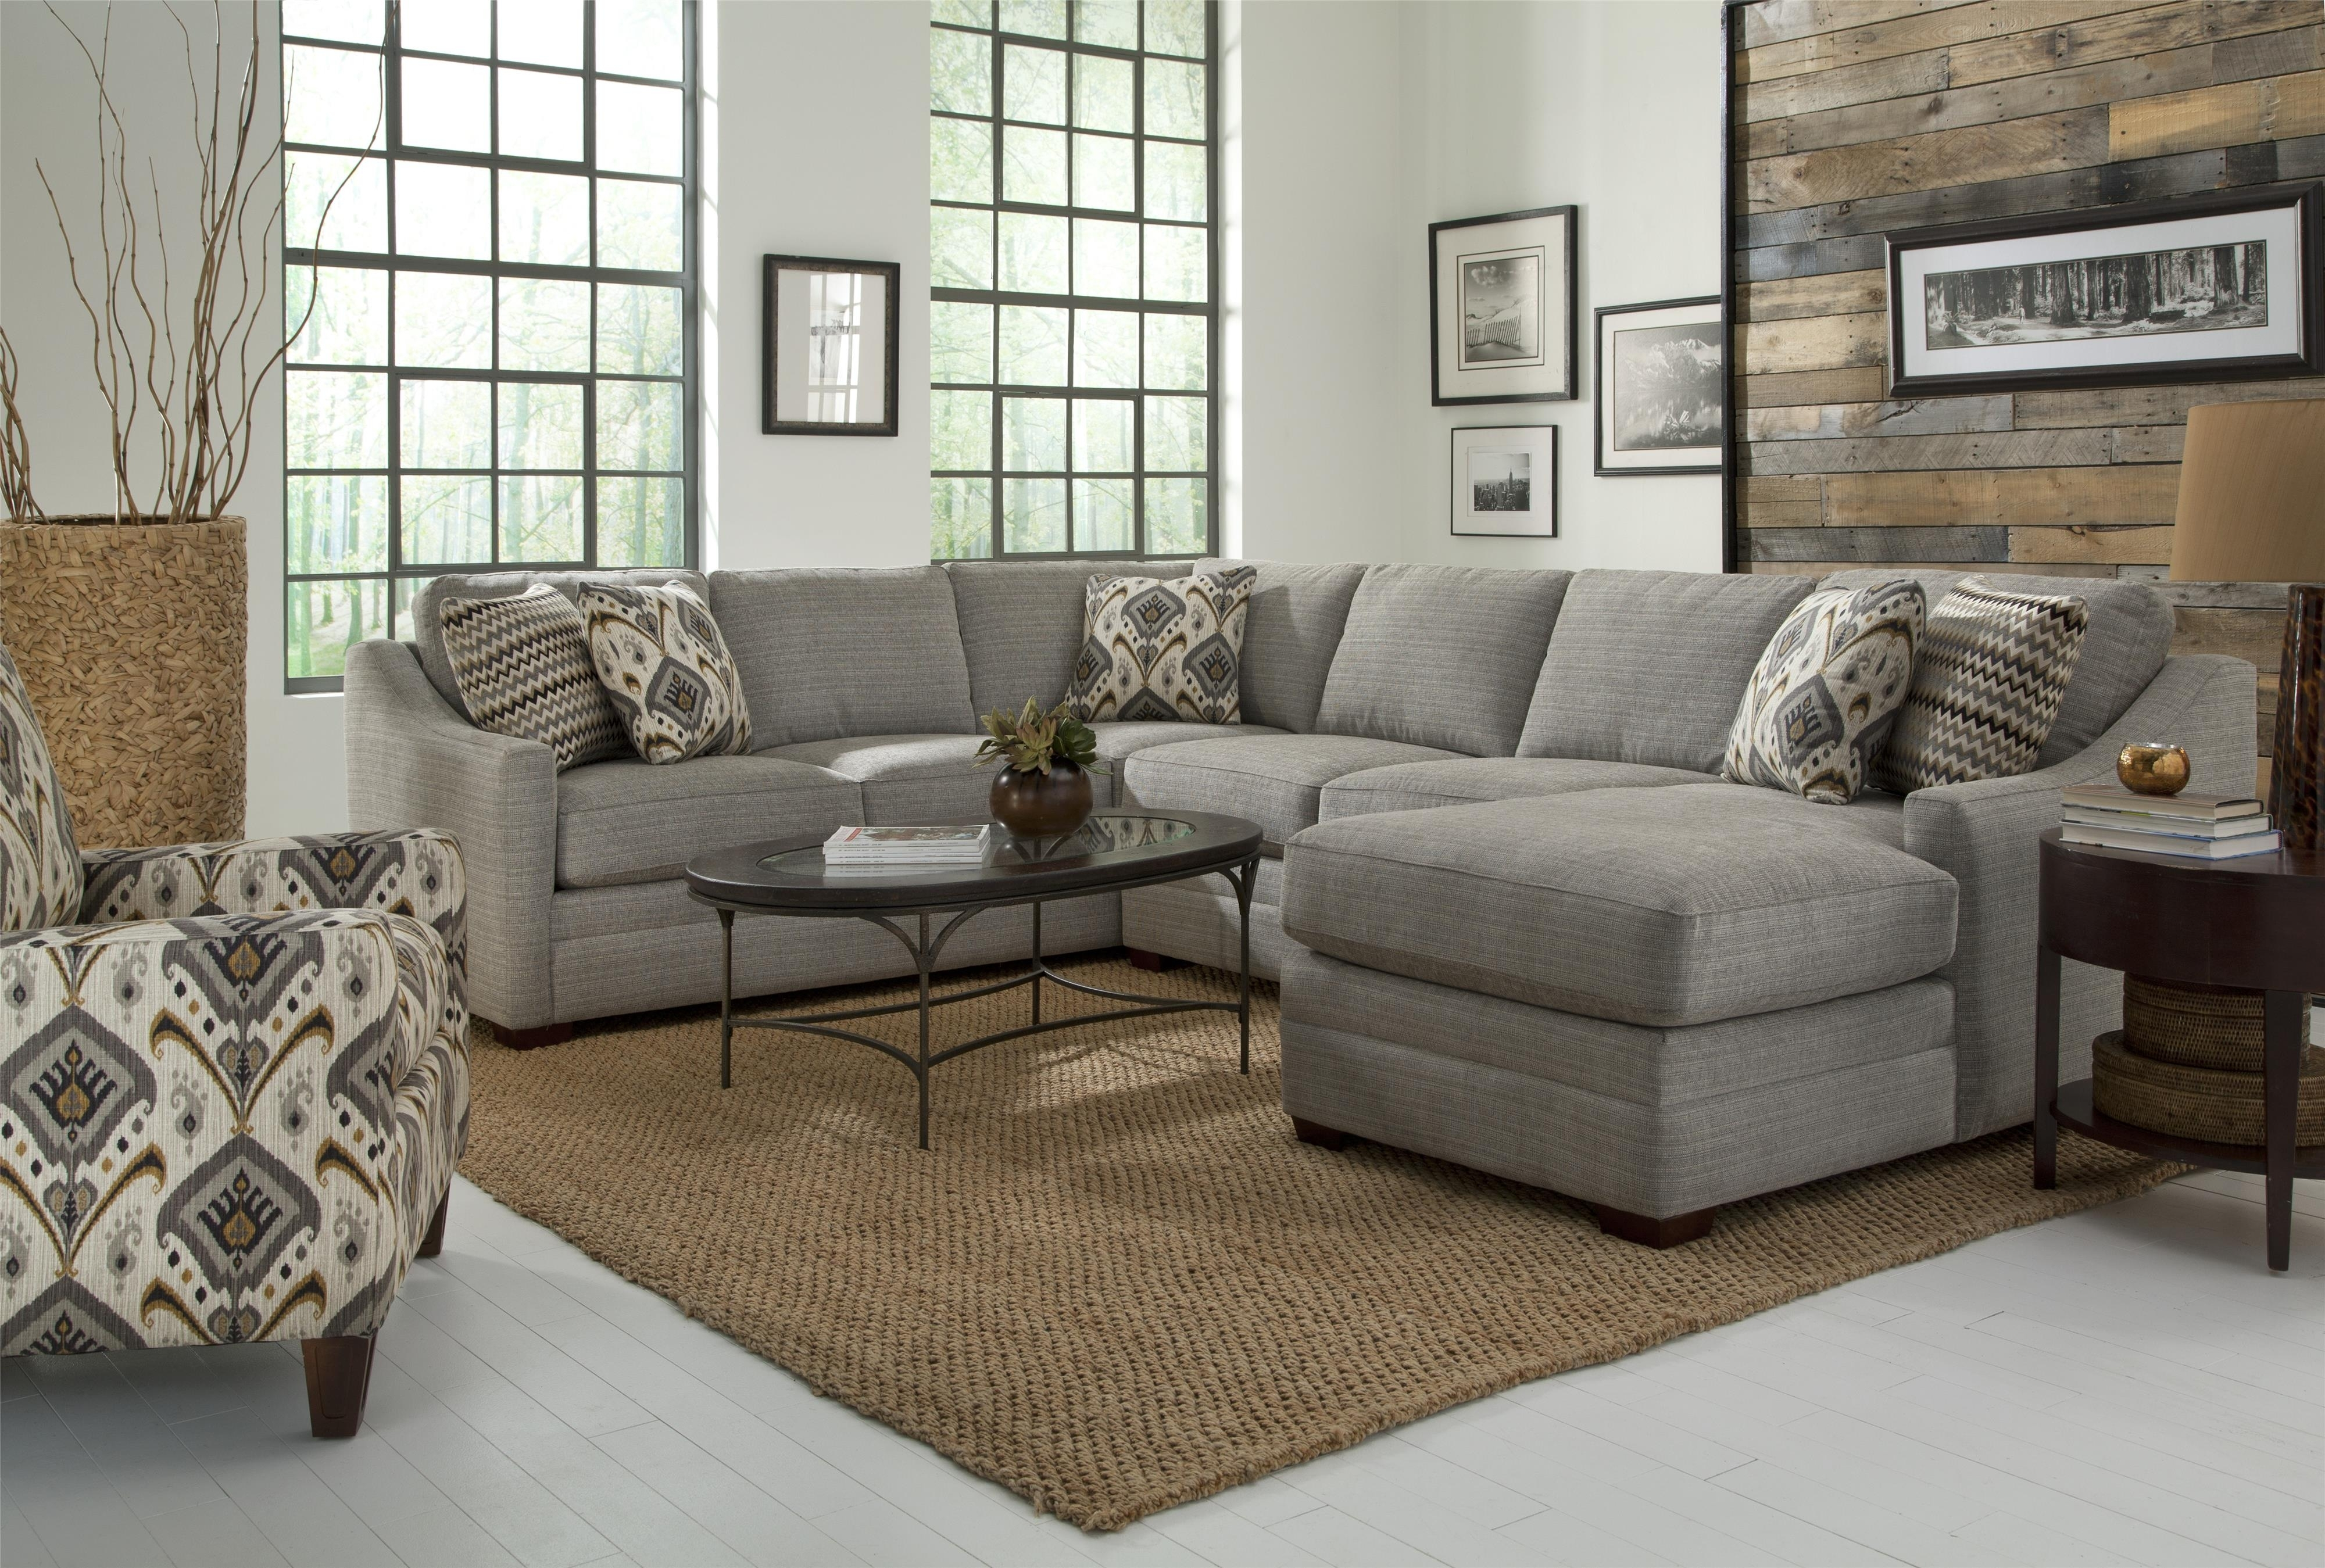 Craftmaster F9 Custom Collection Customizable Four Piece Sectional Within Avery 2 Piece Sectionals With Laf Armless Chaise (Image 11 of 25)